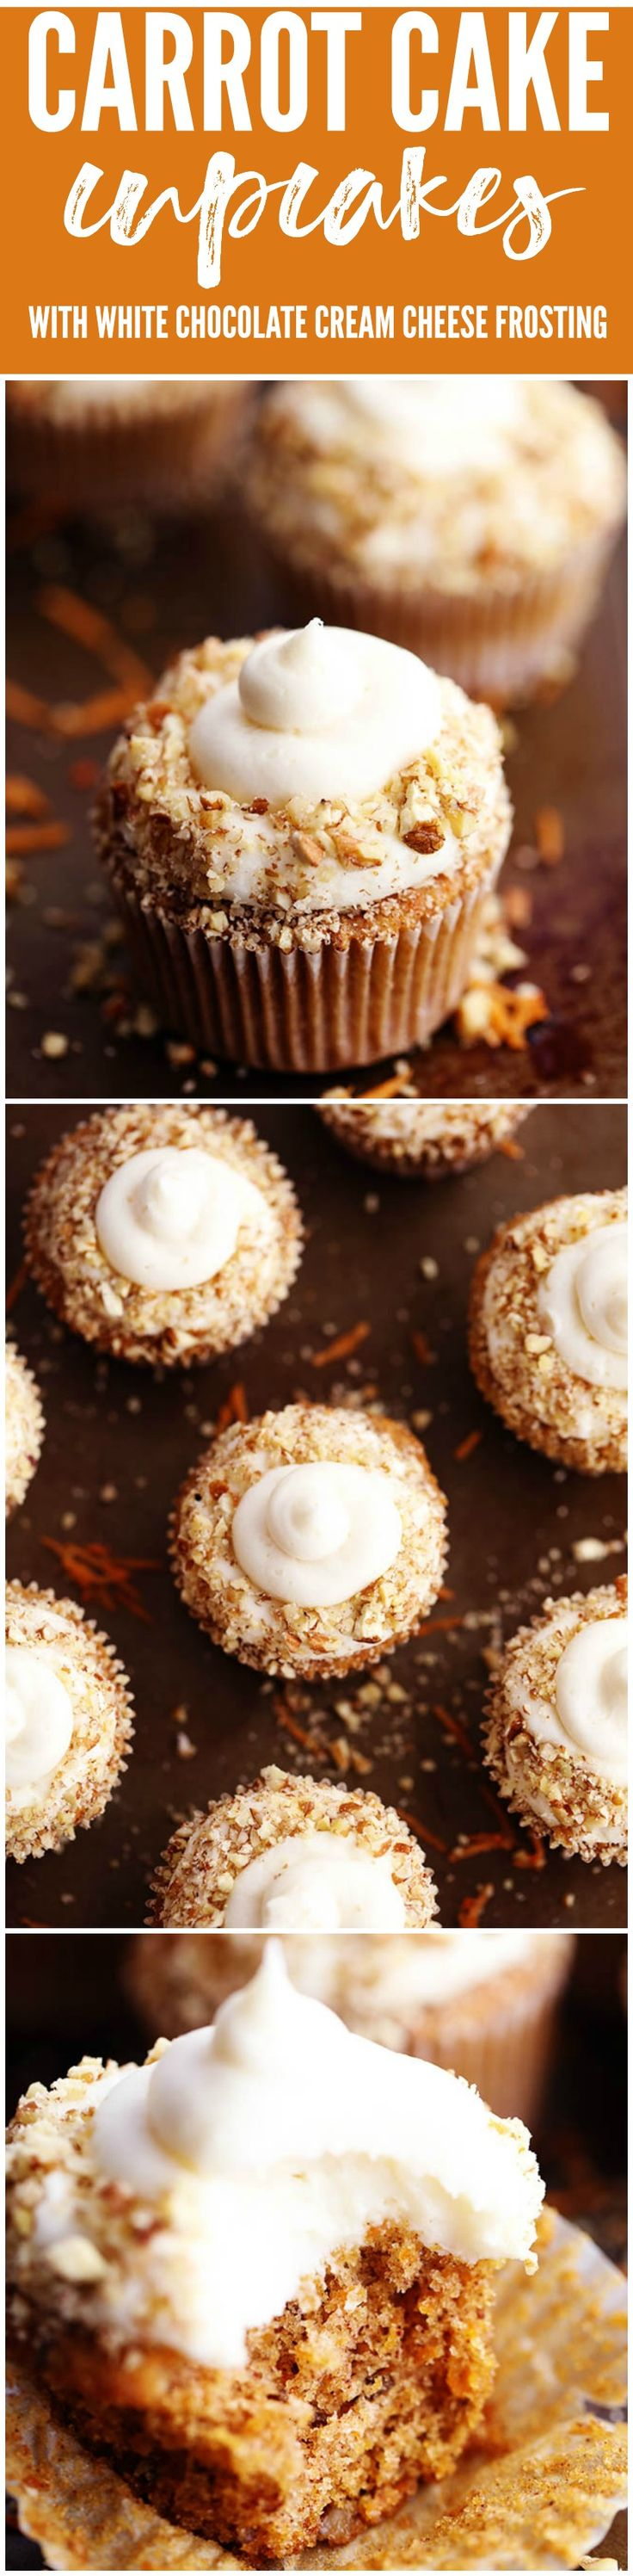 The most perfect and moist spiced carrot cake cupcakes with a white chocolate cream cheese frosting! These became one of my favorite cupcakes with the first bite!